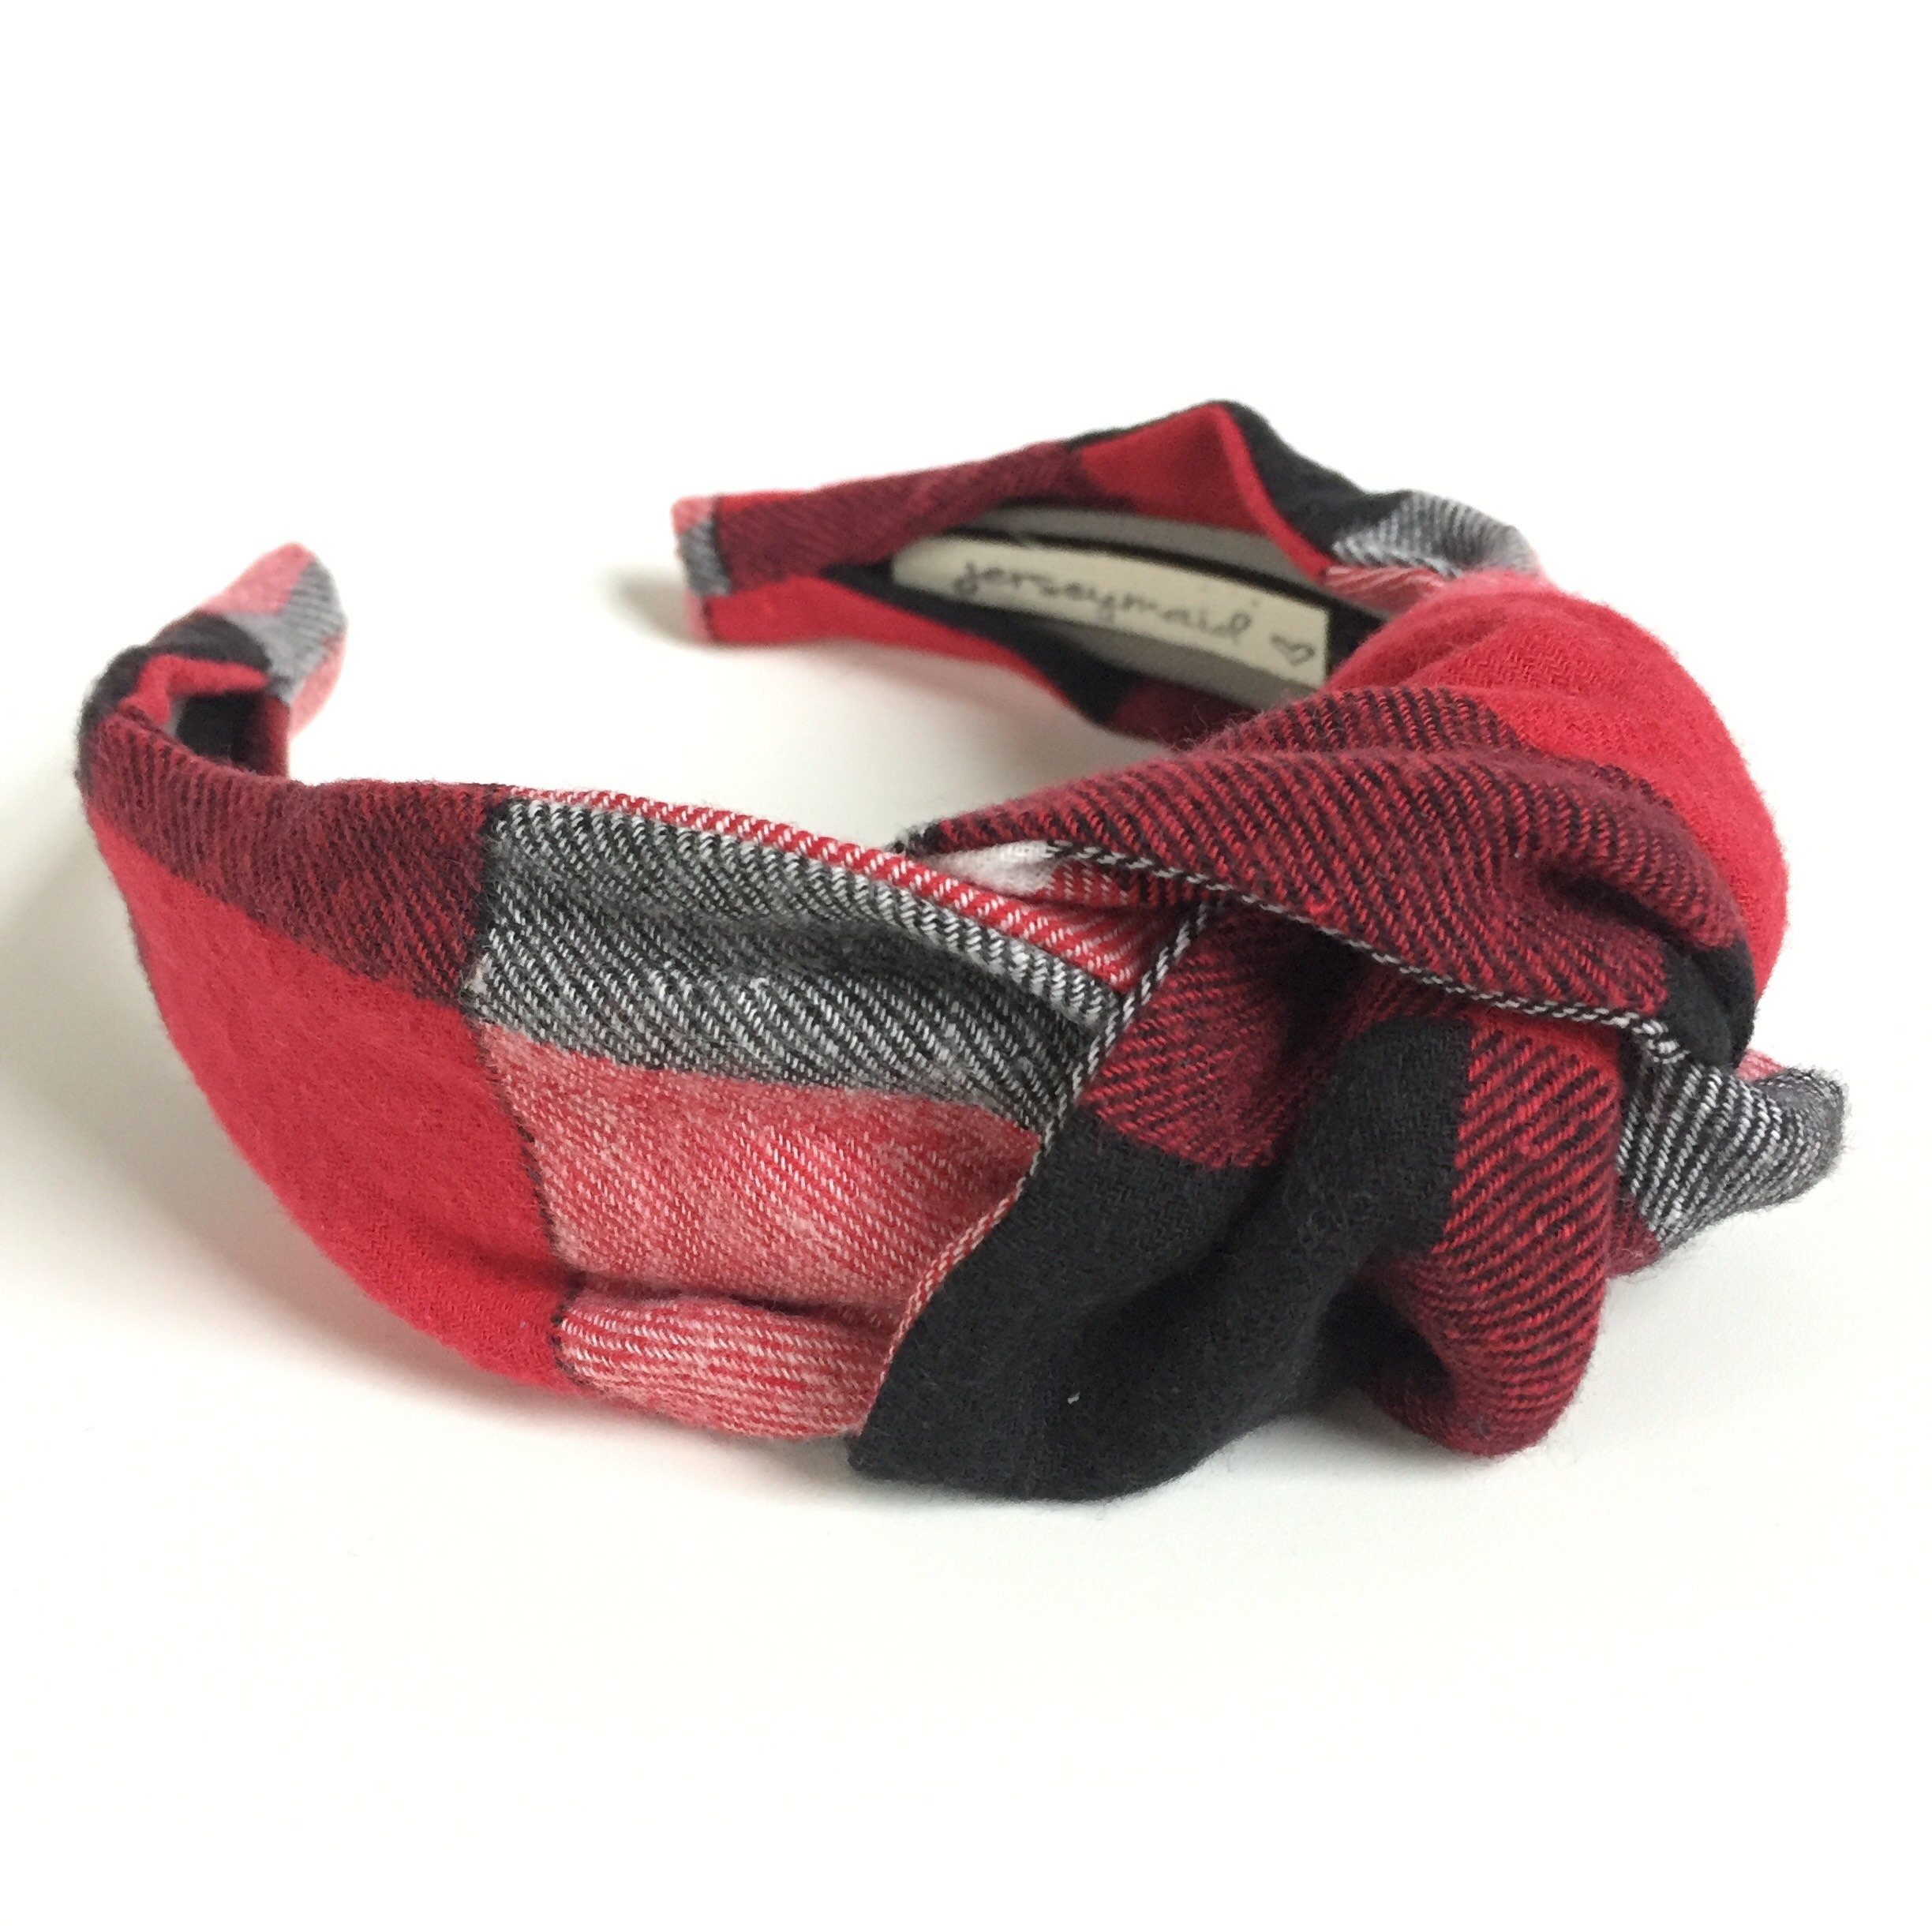 1e3418cd7dda7 Buffalo Plaid Top knot headband red black & white 40's vintage style  hairband hair accessories no slip stay on knotted head band for women